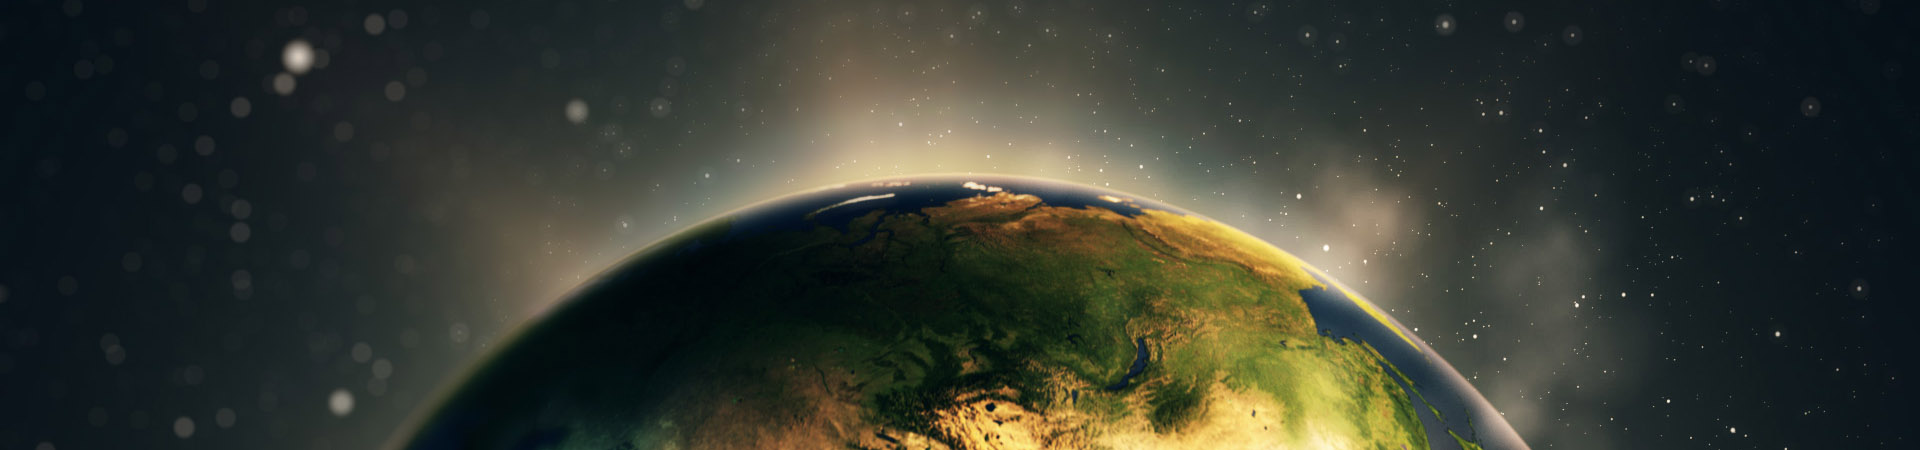 SLIDER-Earth-In-Space-Final-0-00-01-00-0-00-00-00